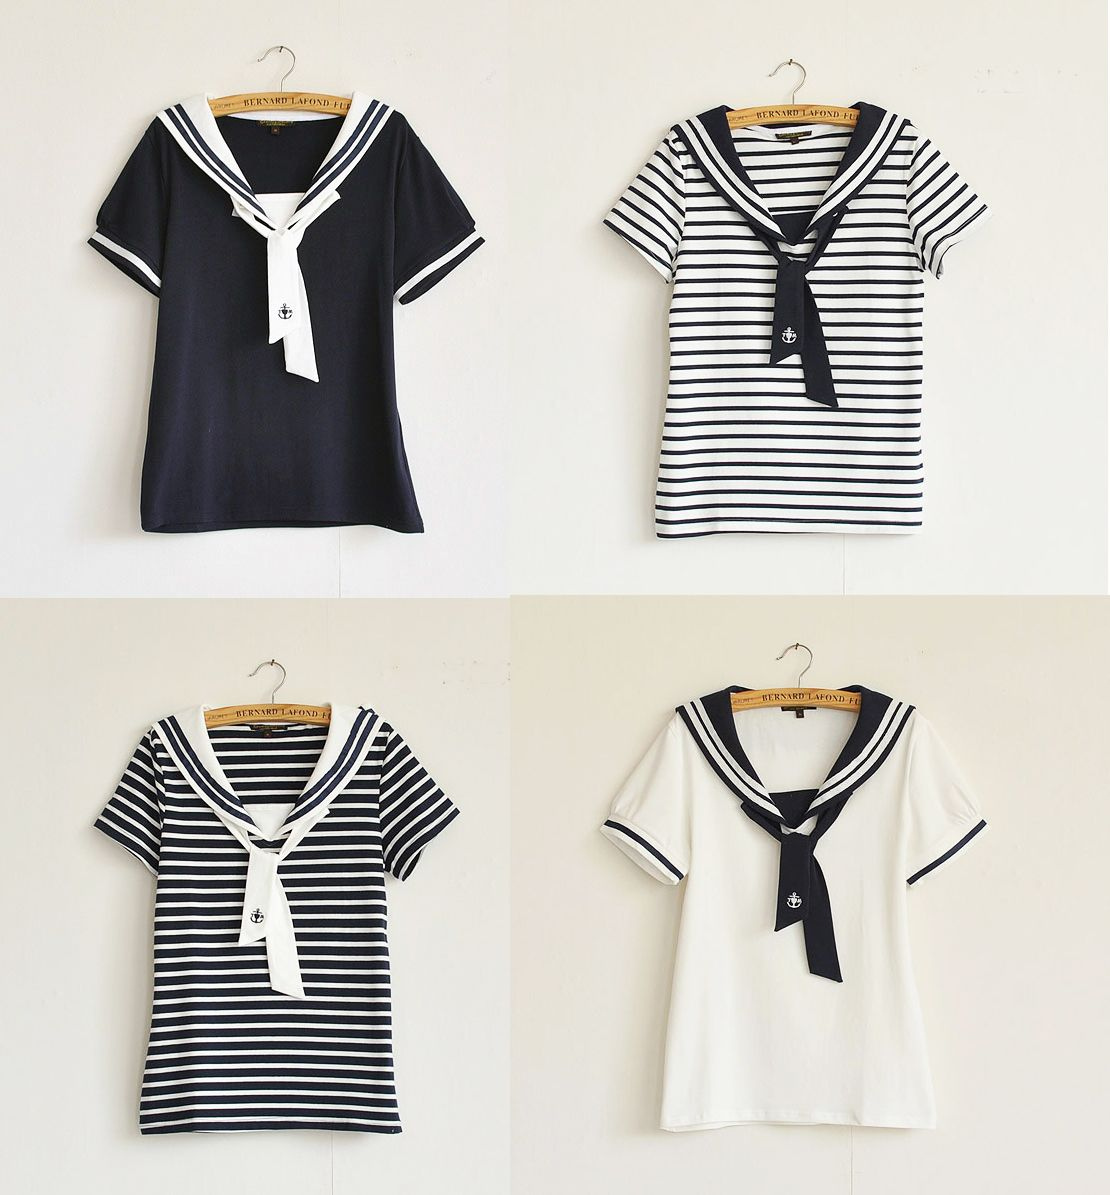 How To Style Sailor Shirt